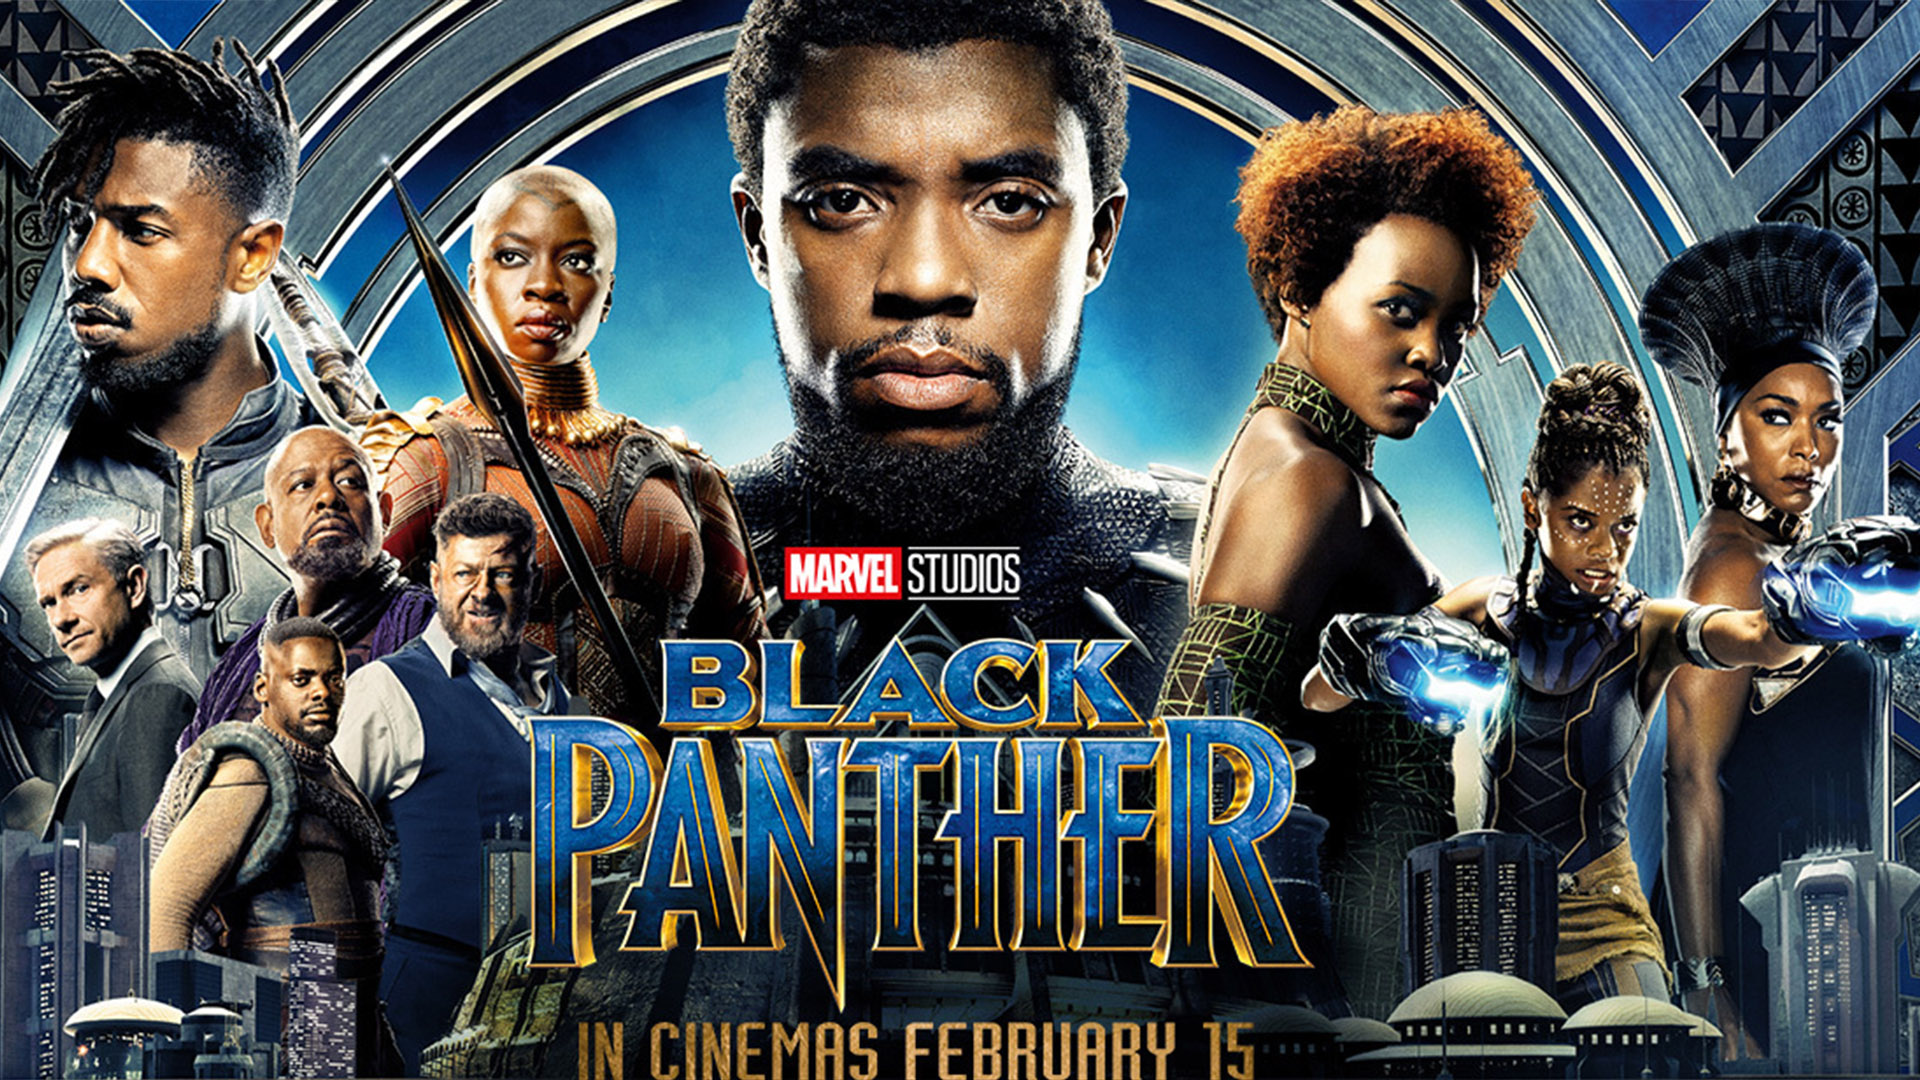 Marvel's Black Panther Film Review - Movie poster